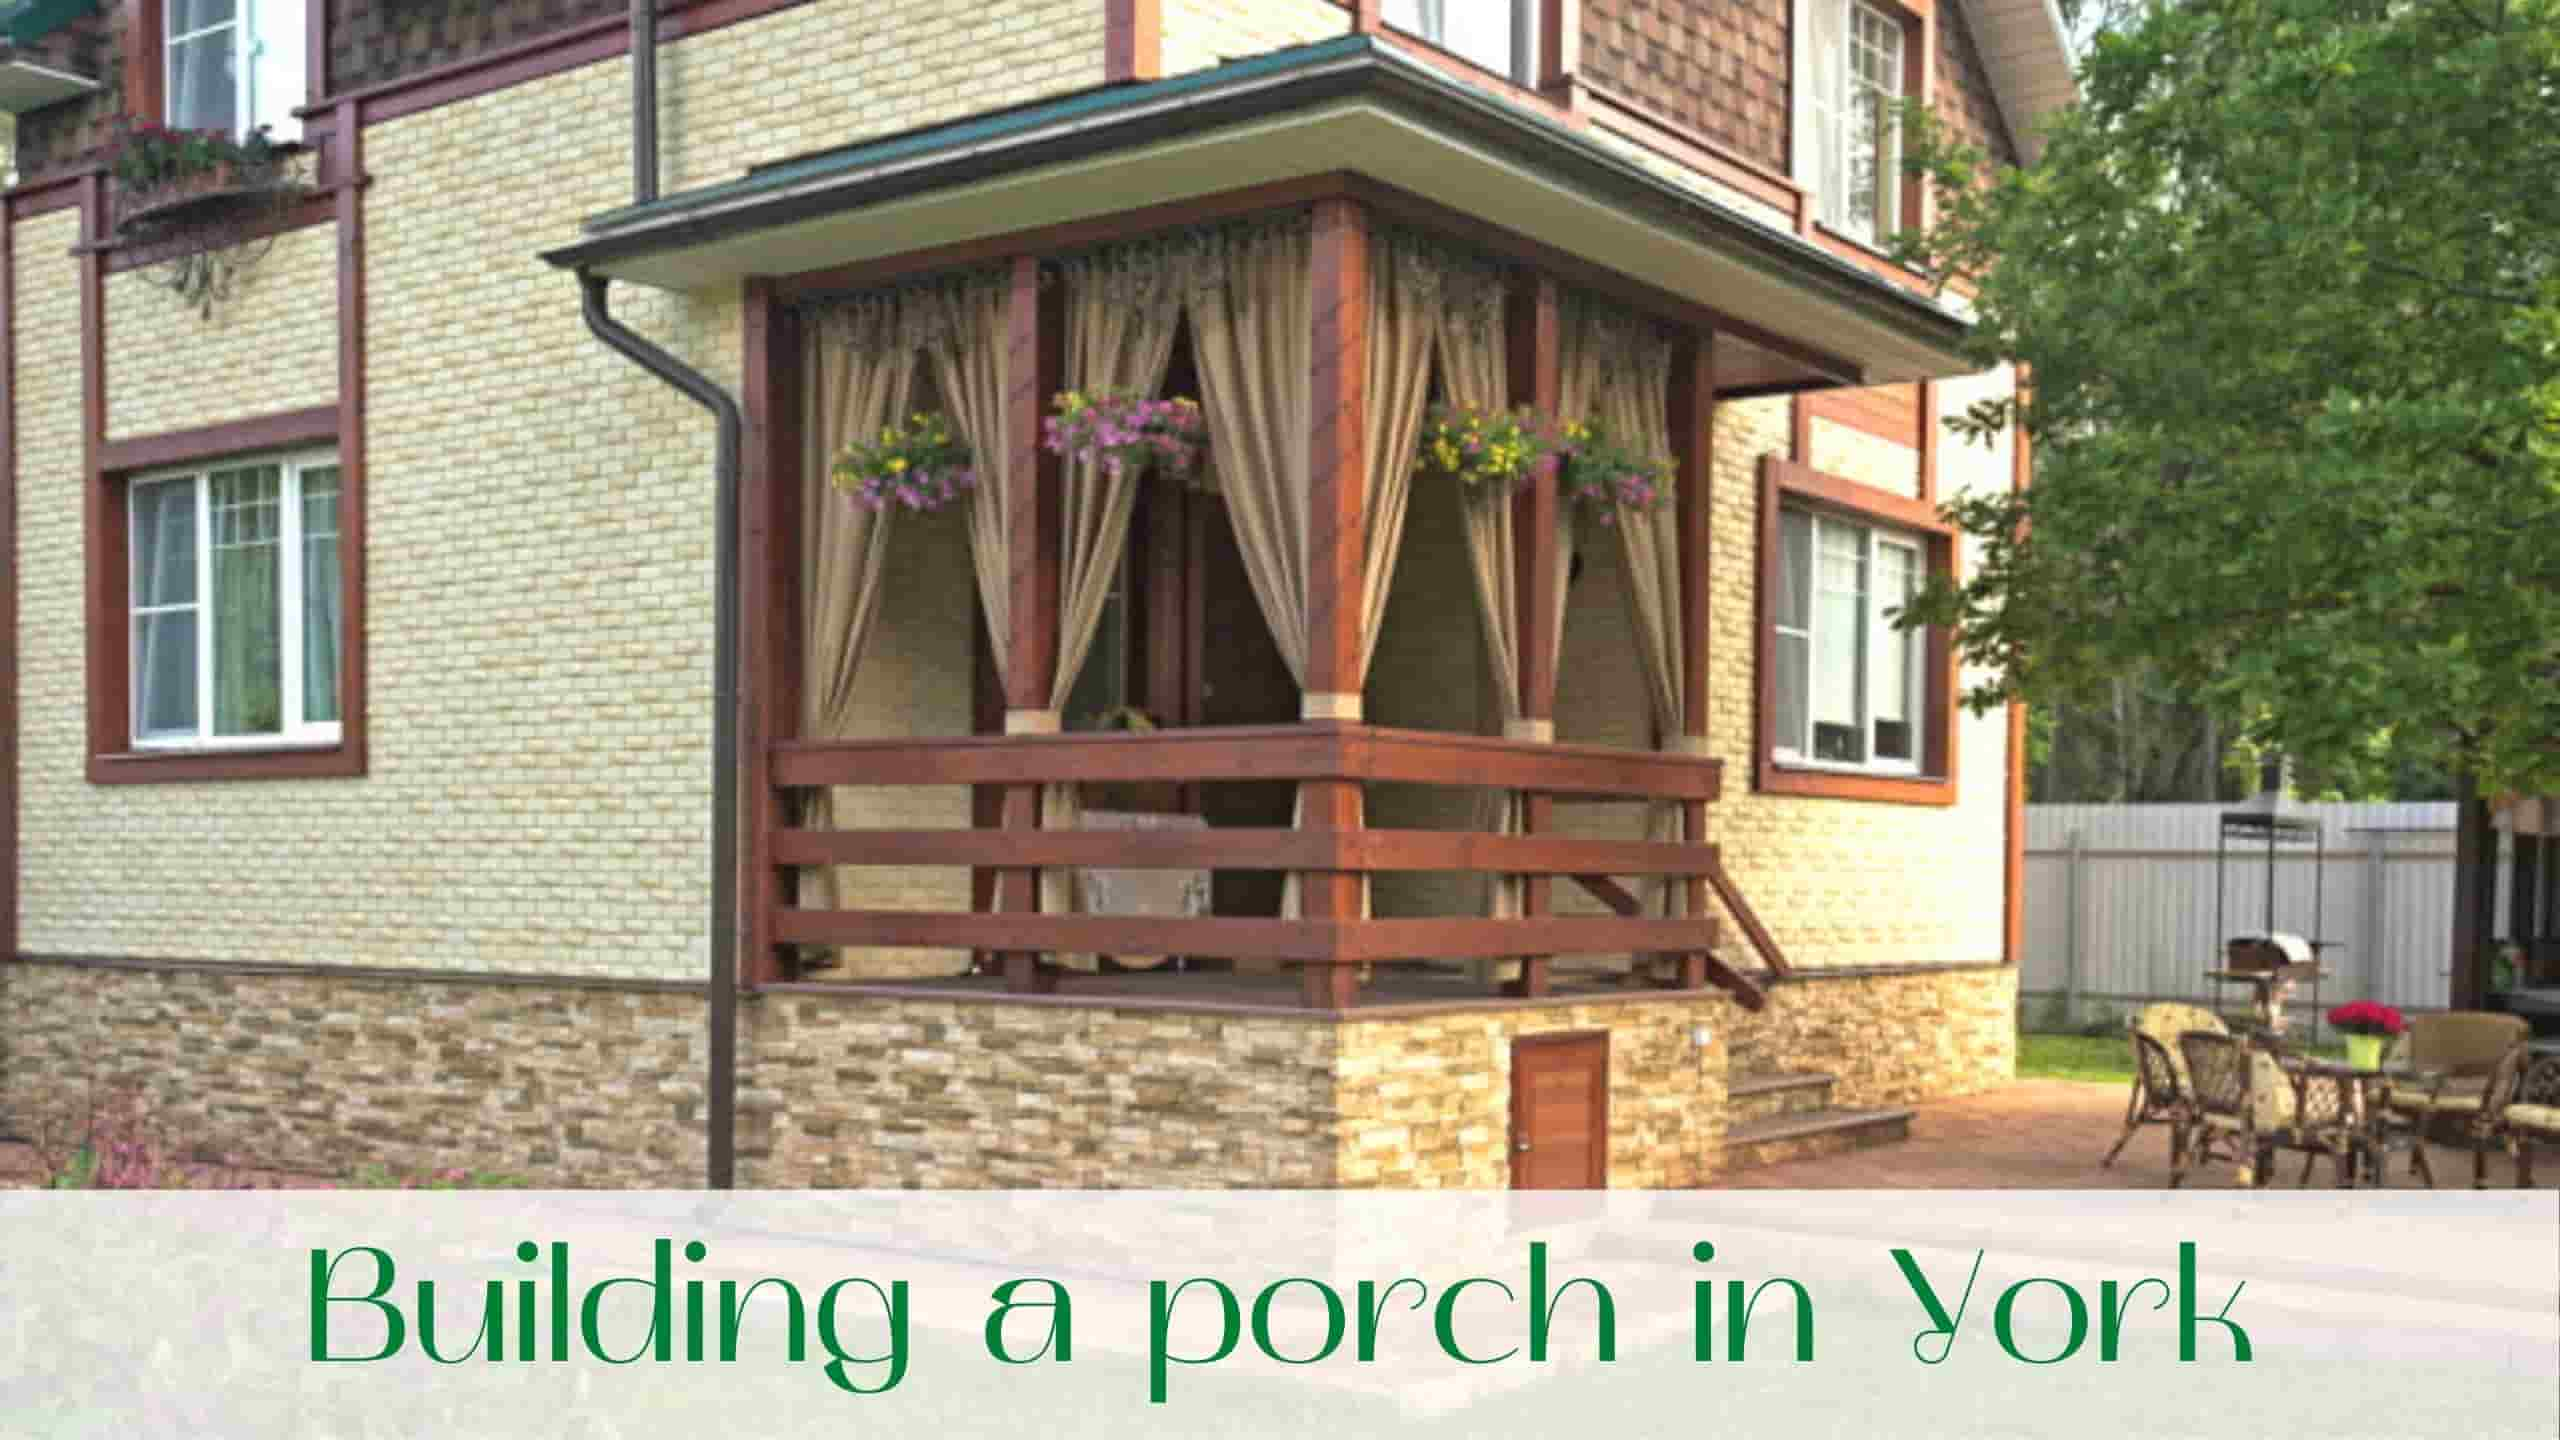 image-Building-a-porch-in-York